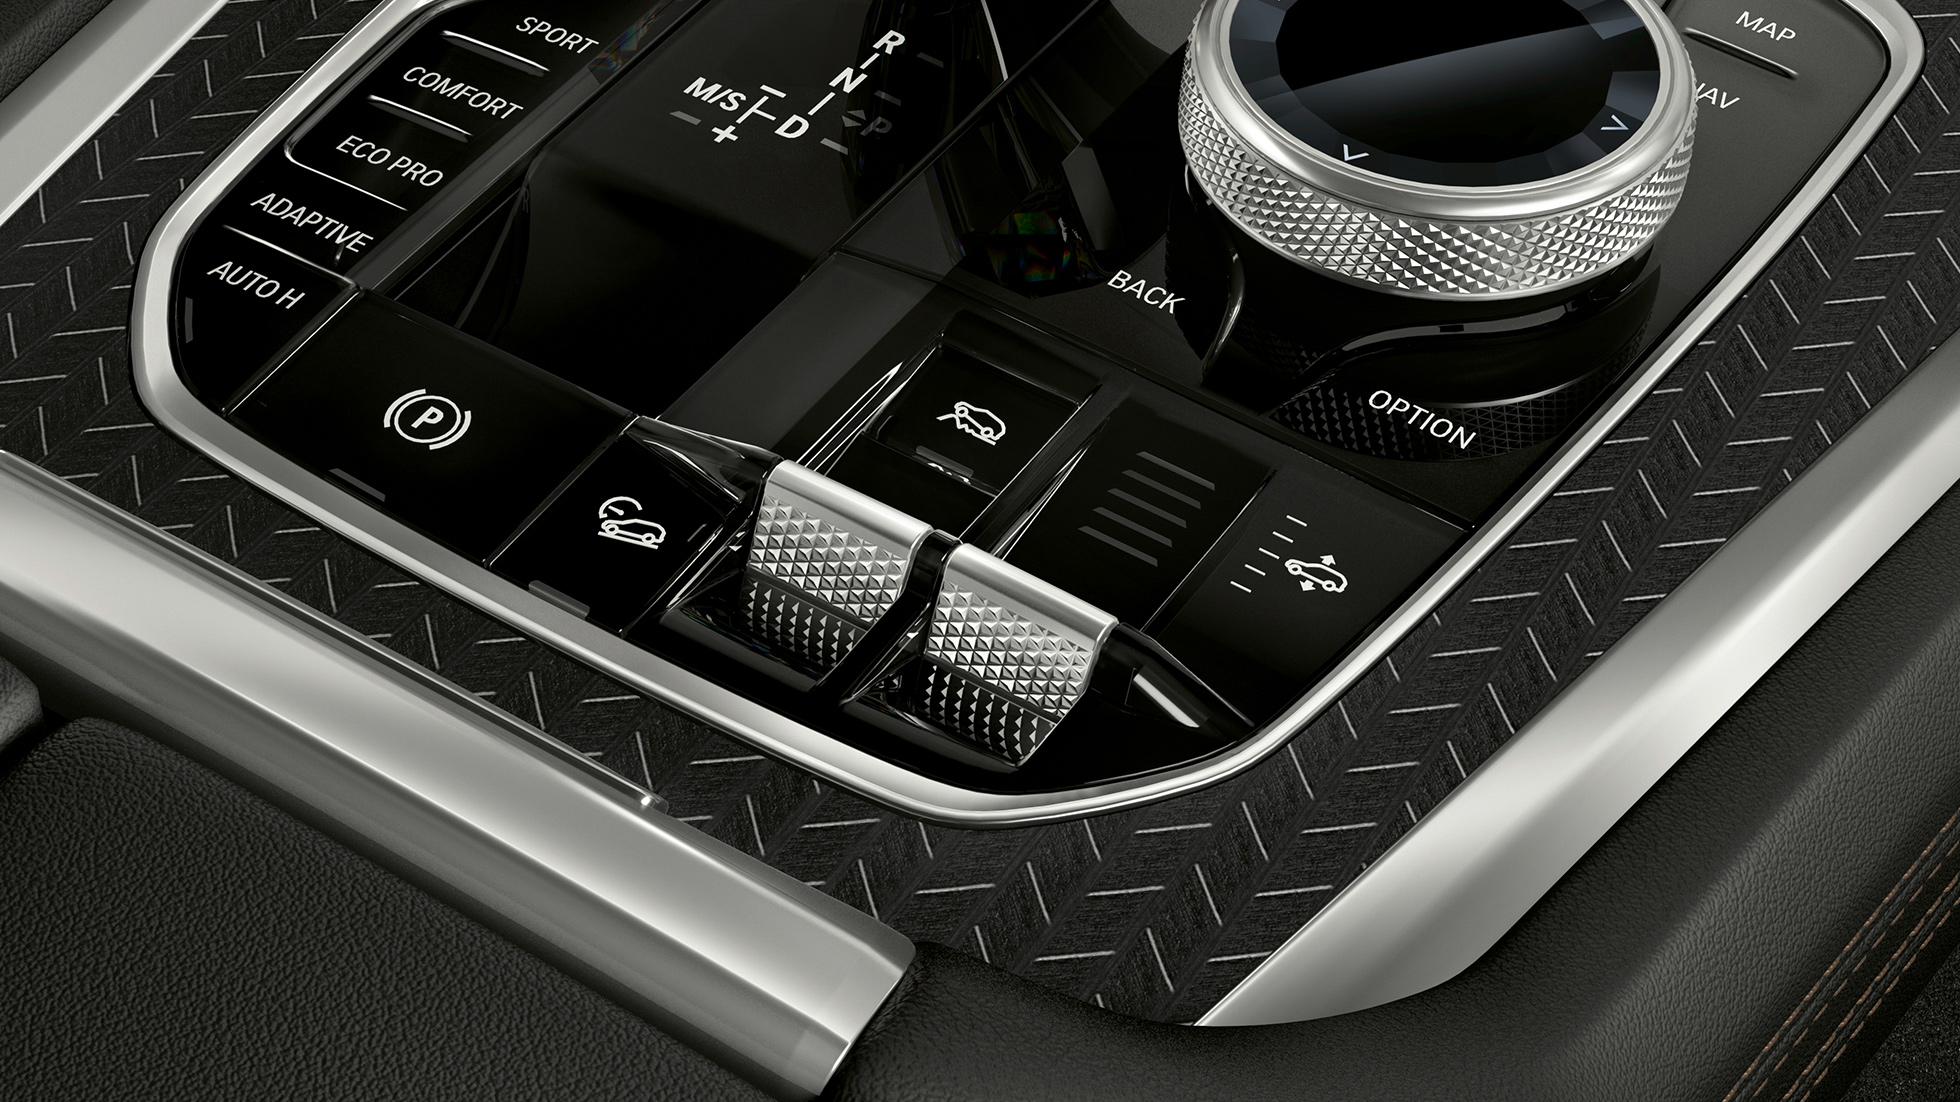 Close-up of the BMW X6 interior with view of the centre console.